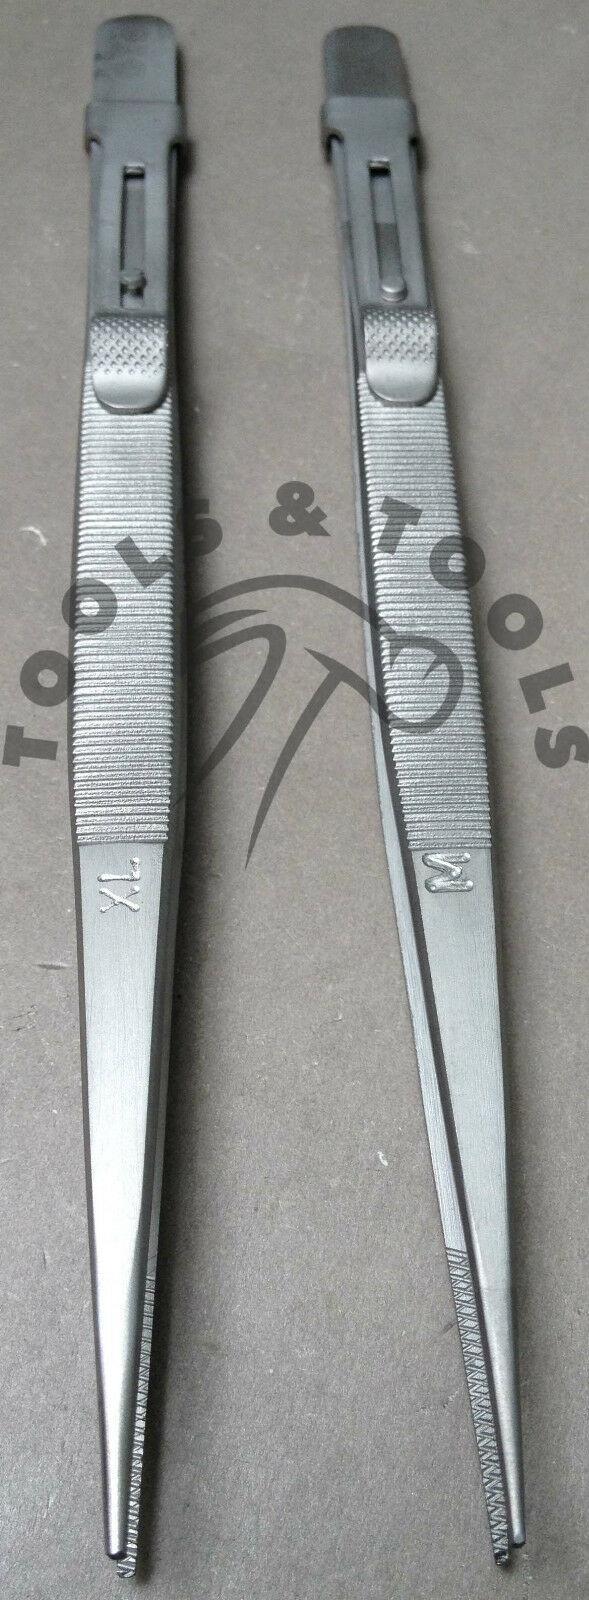 "TWEEZERS DIAMOND GEMSTONE BEAD ANODIZED BLACK TWEEZER 6.5/"" JEWELRY CRAFTS F /& M"